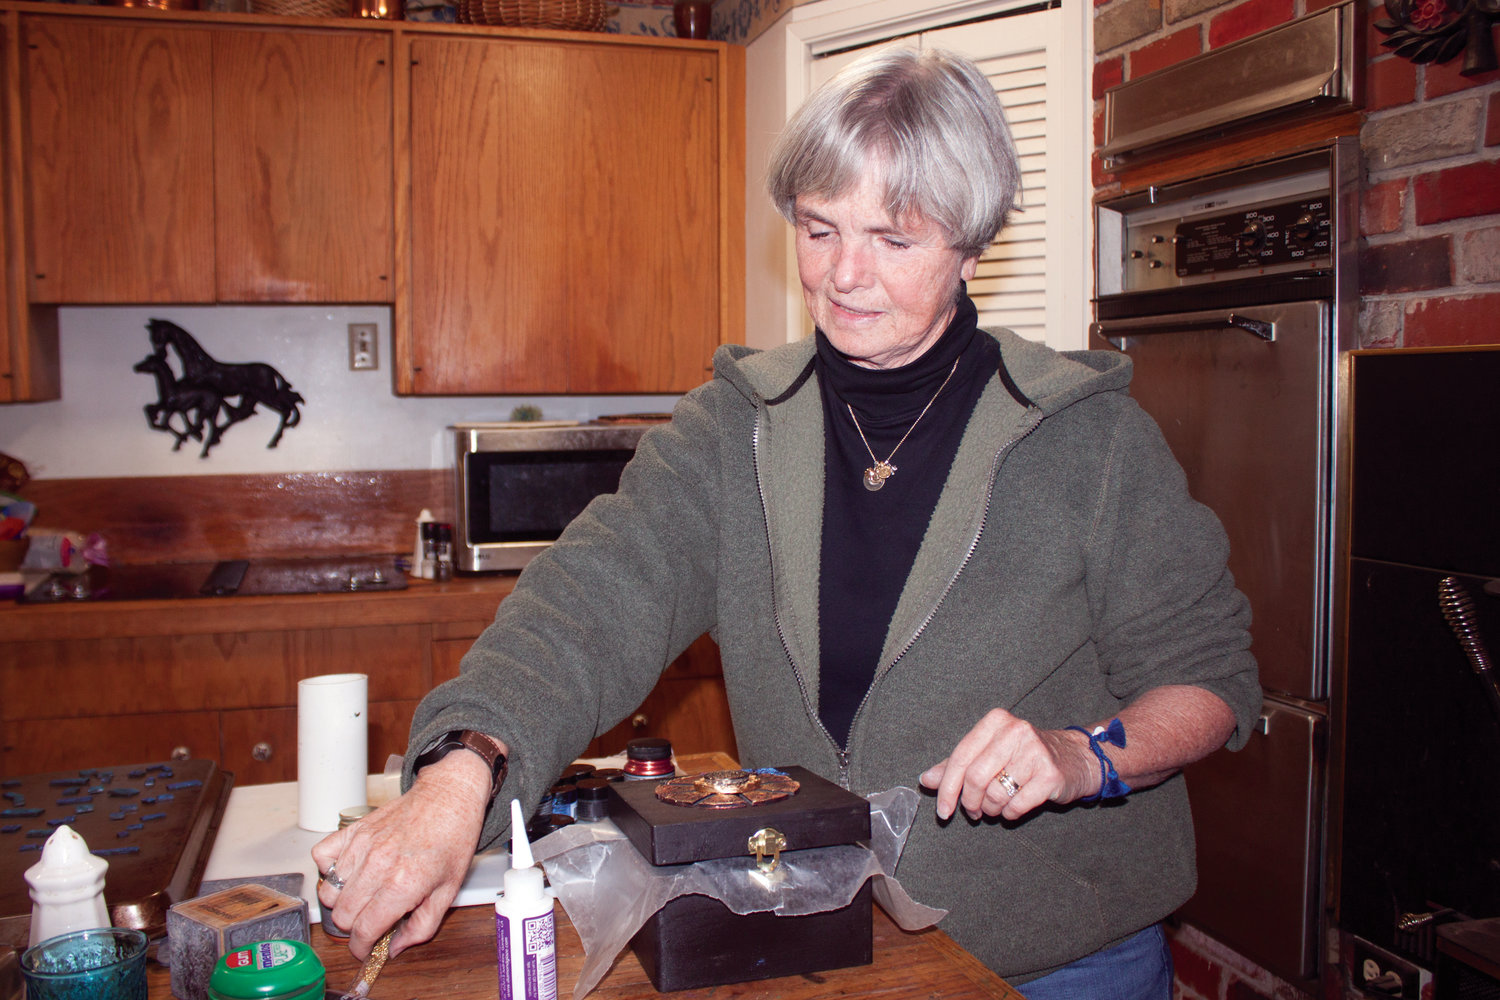 Nancy McDaniel works in her kitchen on one of the craftwork pieces she sells at multiple regional craft shows throughout the year.